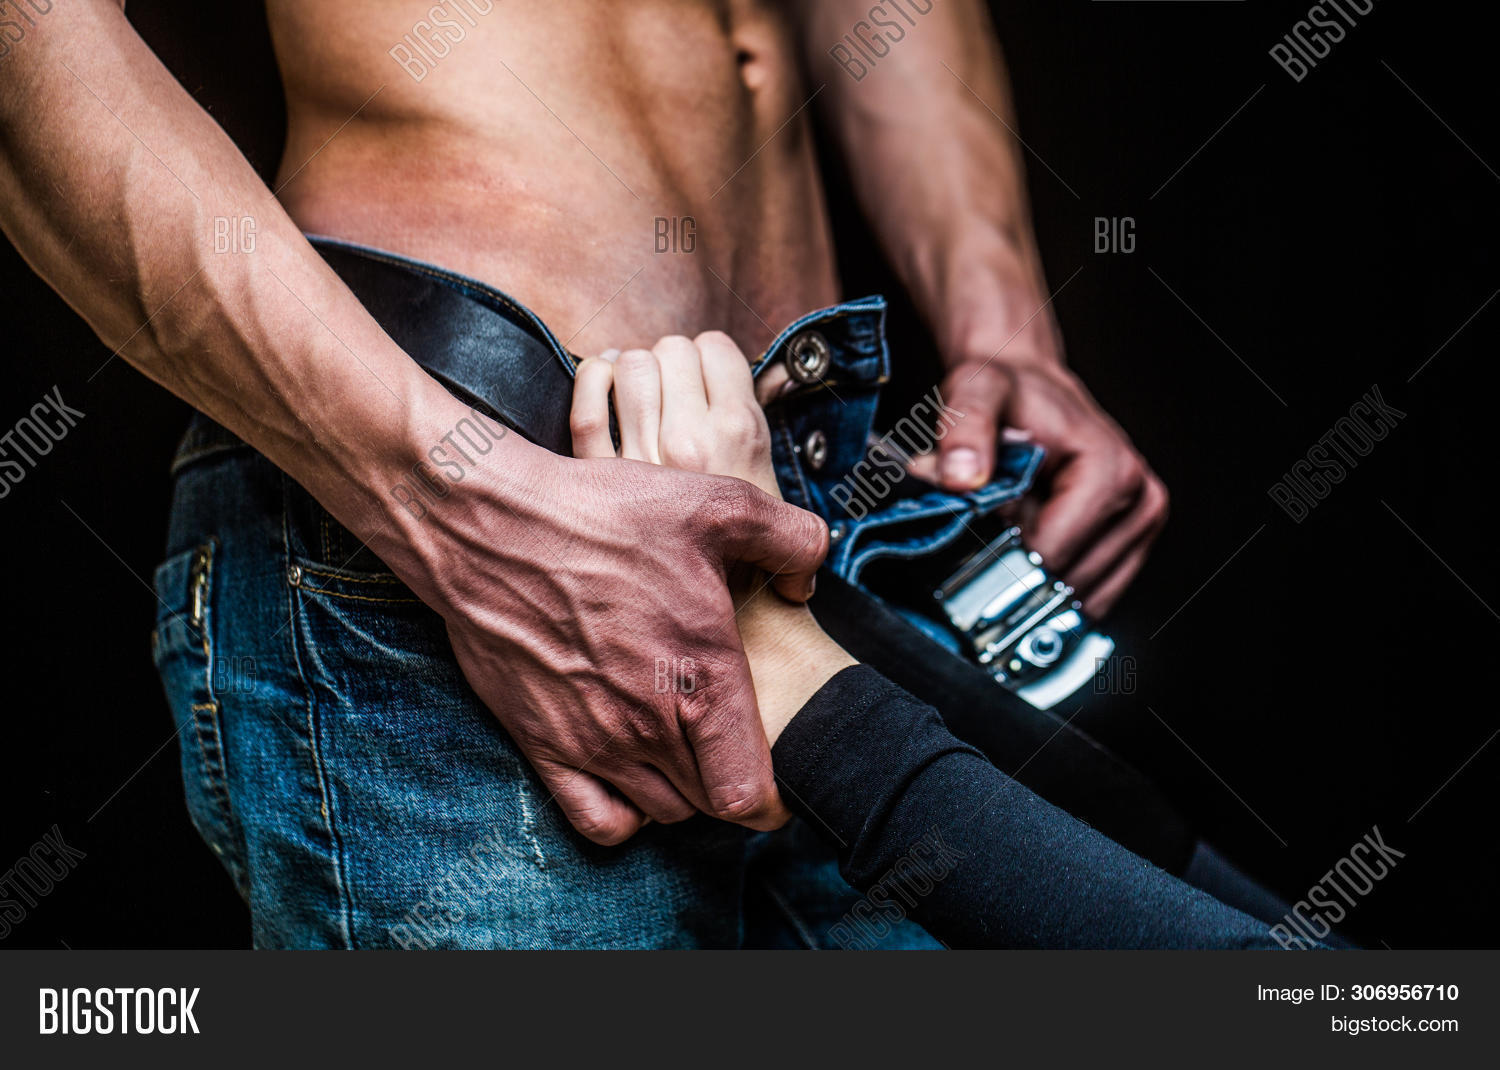 Brutal sex. Passionate young couple on dark background. Sensual touch. Sensual girl. Sexual abuse. Female hand unfolds mens zipper on jeans. Sexy woman roztebat man pants